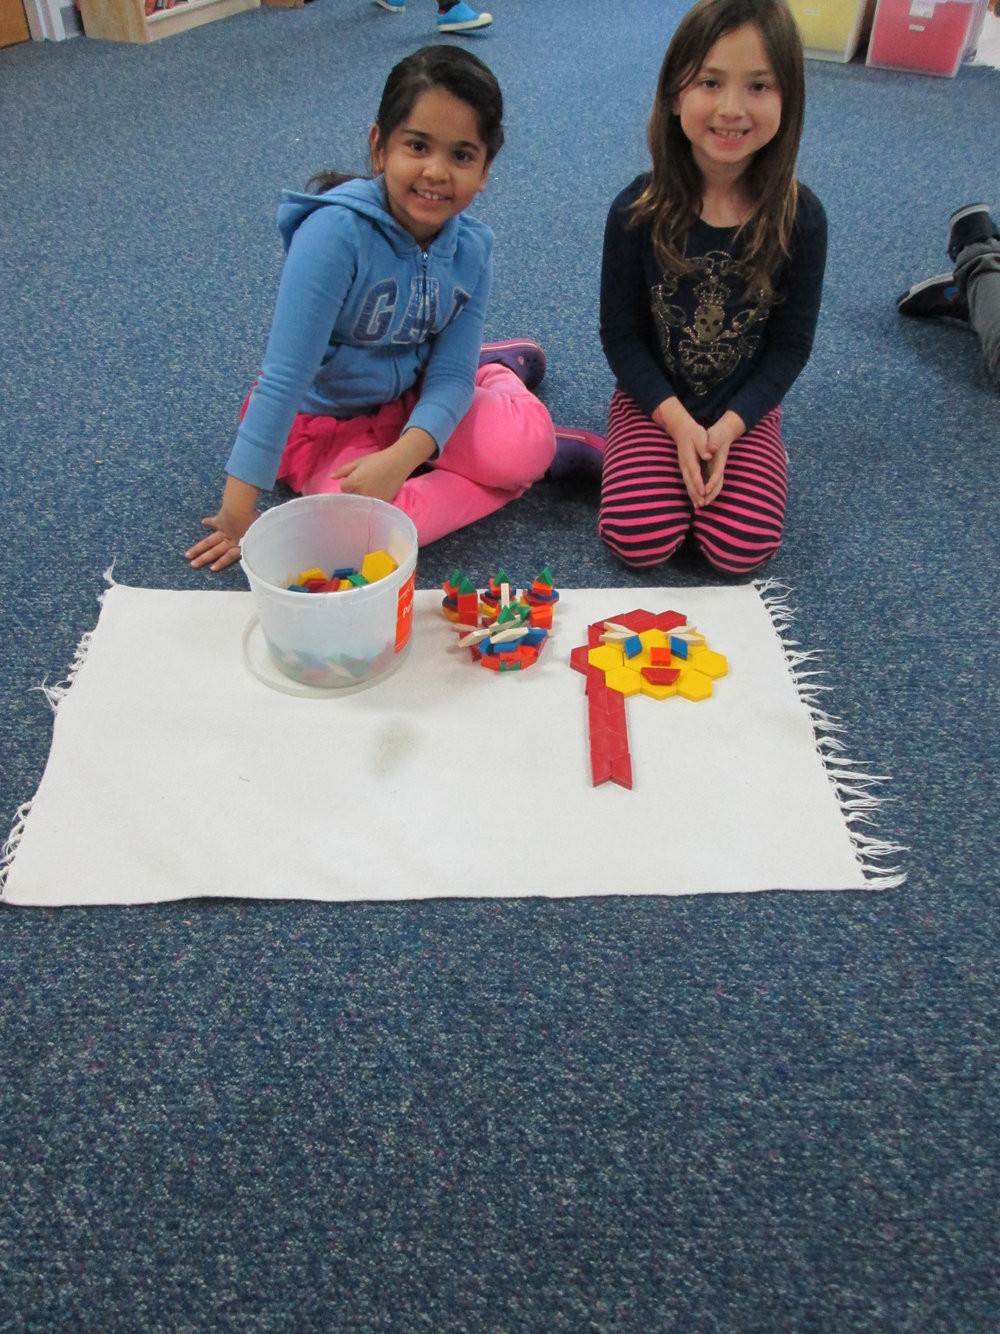 Once school resumed after Winter Storm Jonas, the Lower Elementary East students had a wonderful time during indoor recess on Tuesday.  Before going outside throughout the rest of the week, the students had the opportunity to use works from the Practical Life shelf.  One student chose to create a design using tangrams.